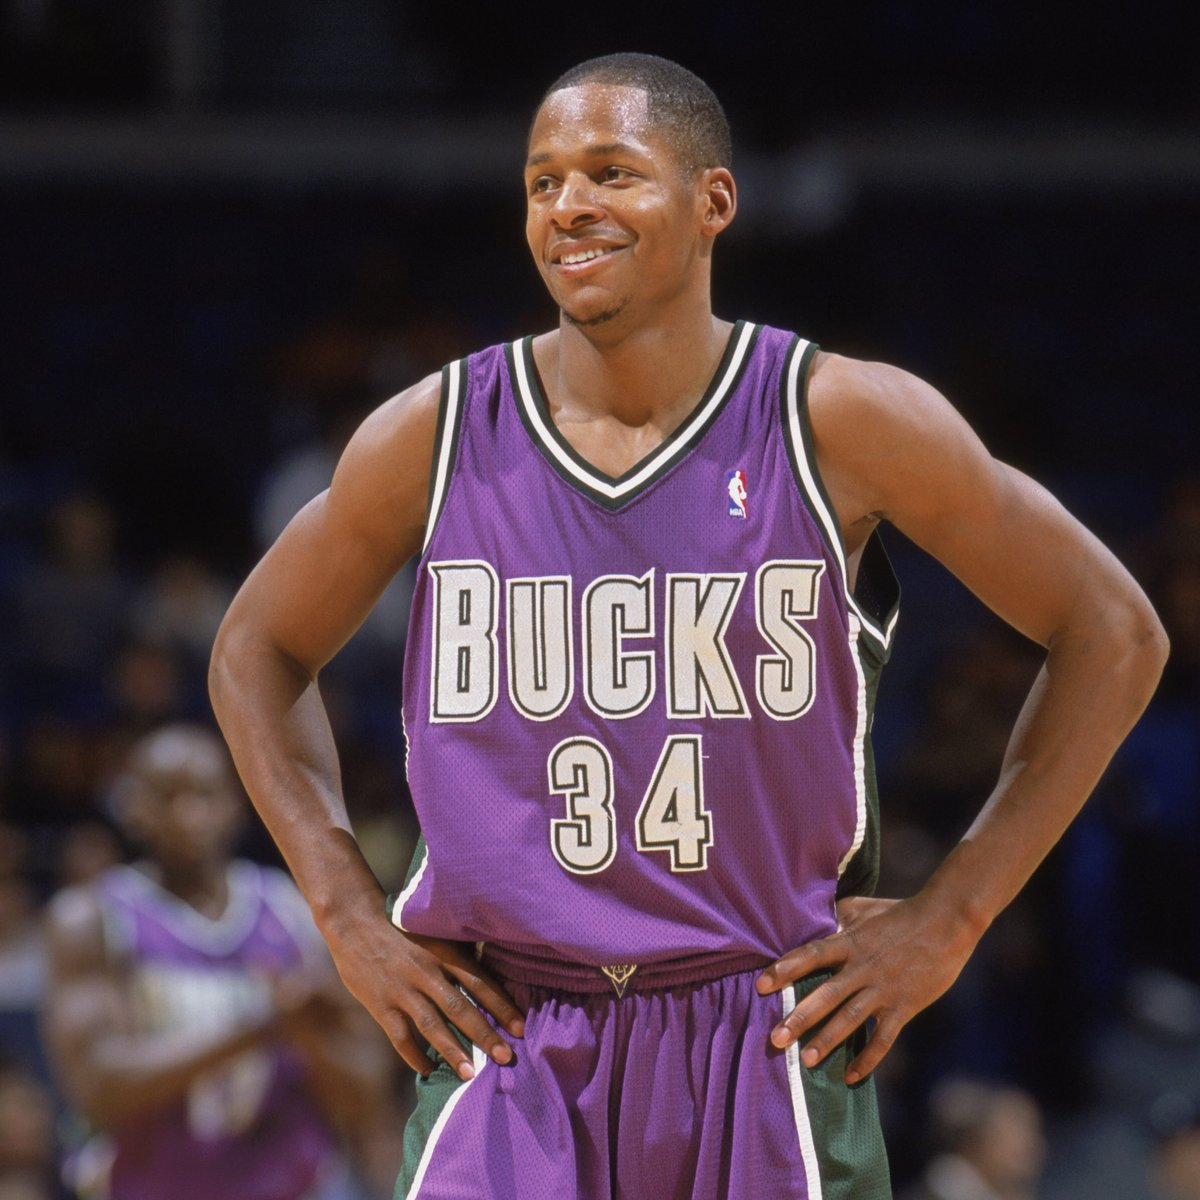 RT @Bucks: Congratulations to Ray Allen on being selected as a @Hoophall class of 2018 finalist!! #LightItUp https://t.co/PApsHrEjol